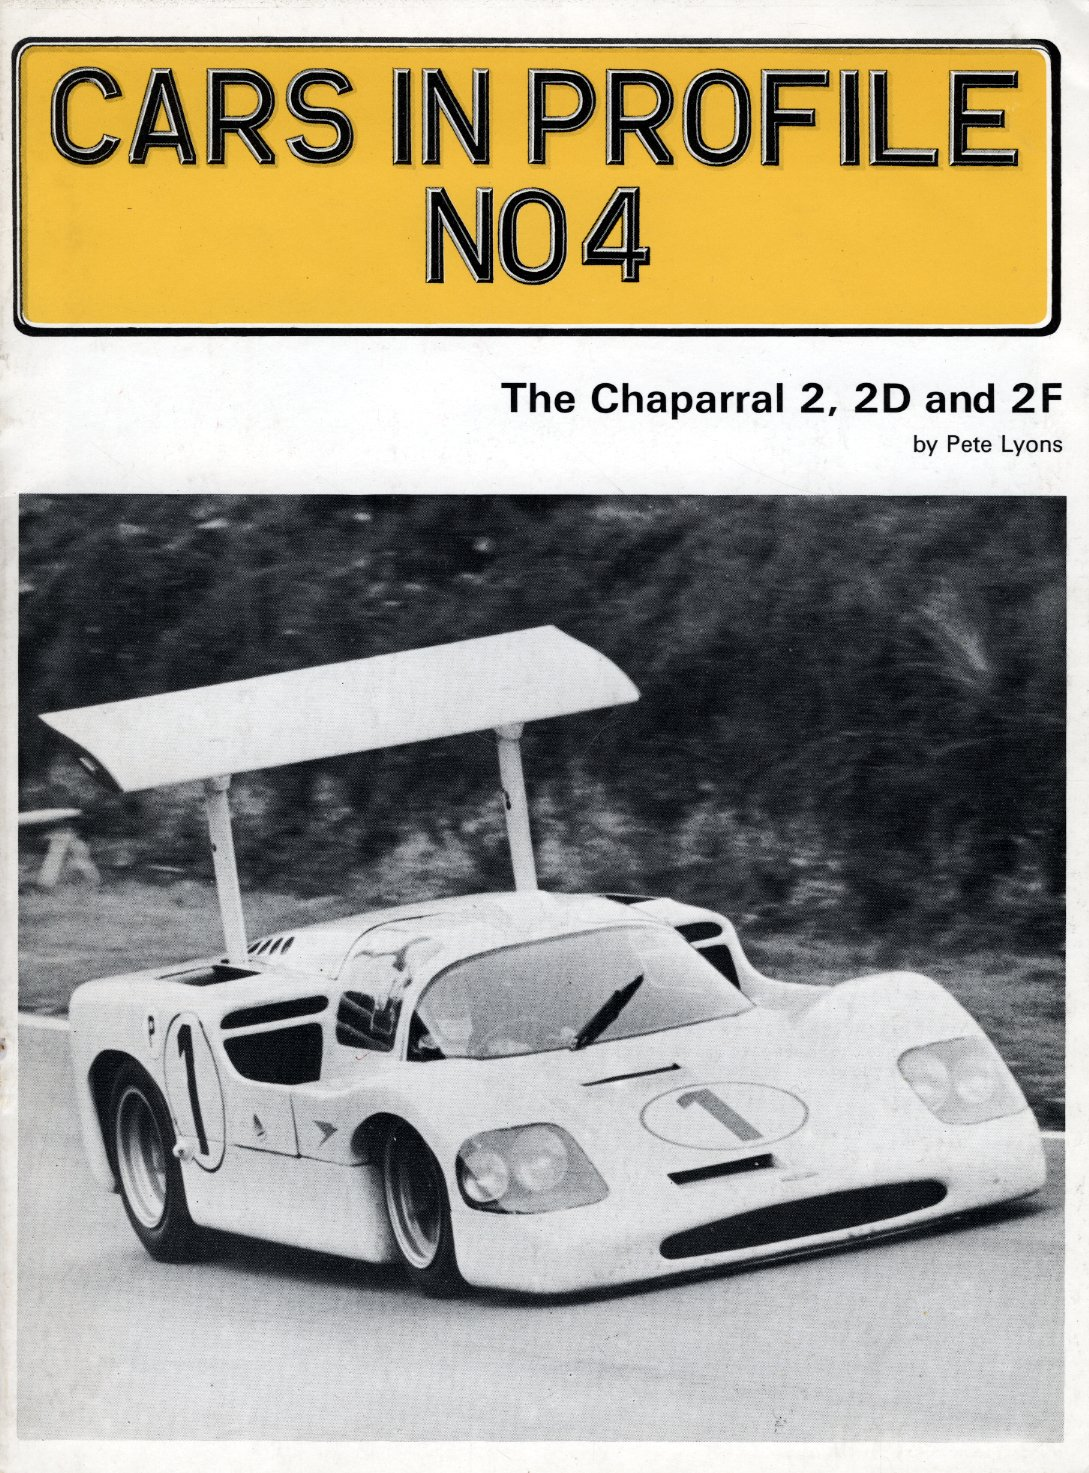 Cars in Profile No 4: The Chaparral 2, 2D and 2F: Pete Lyons: Amazon ...